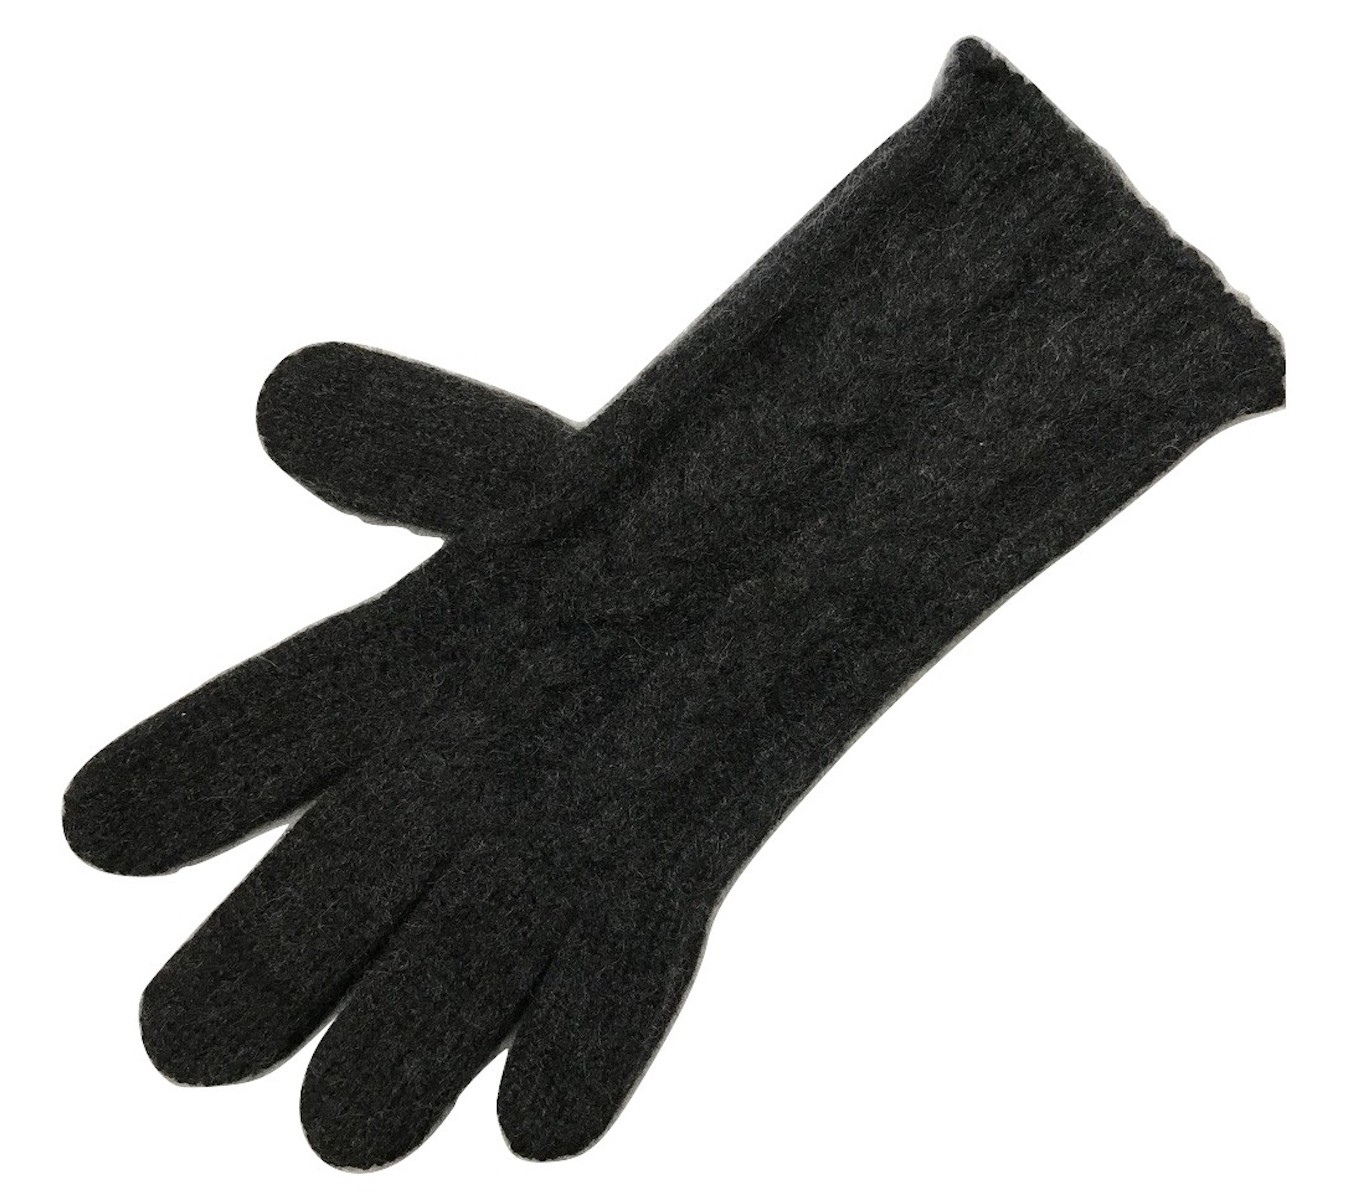 The Scarf Company Charcoal 3 Ply Cable Knit Cashmere Ladies Gloves